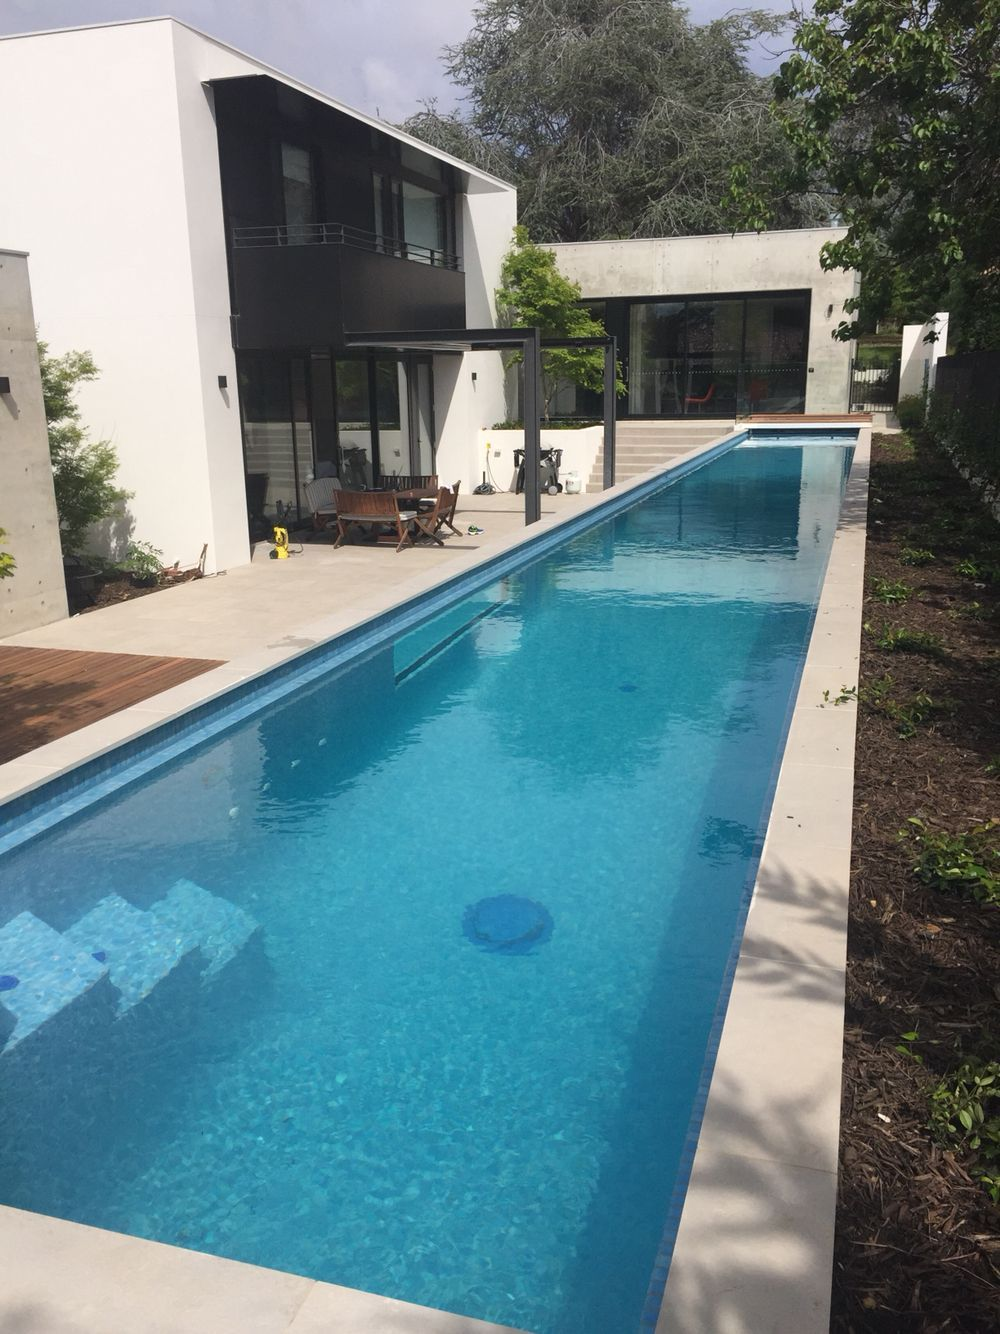 25m Above Ground Residential Lap Pool With 2 Side Windows Lap Pools Backyard Lap Pool Designs Swimming Pool Designs